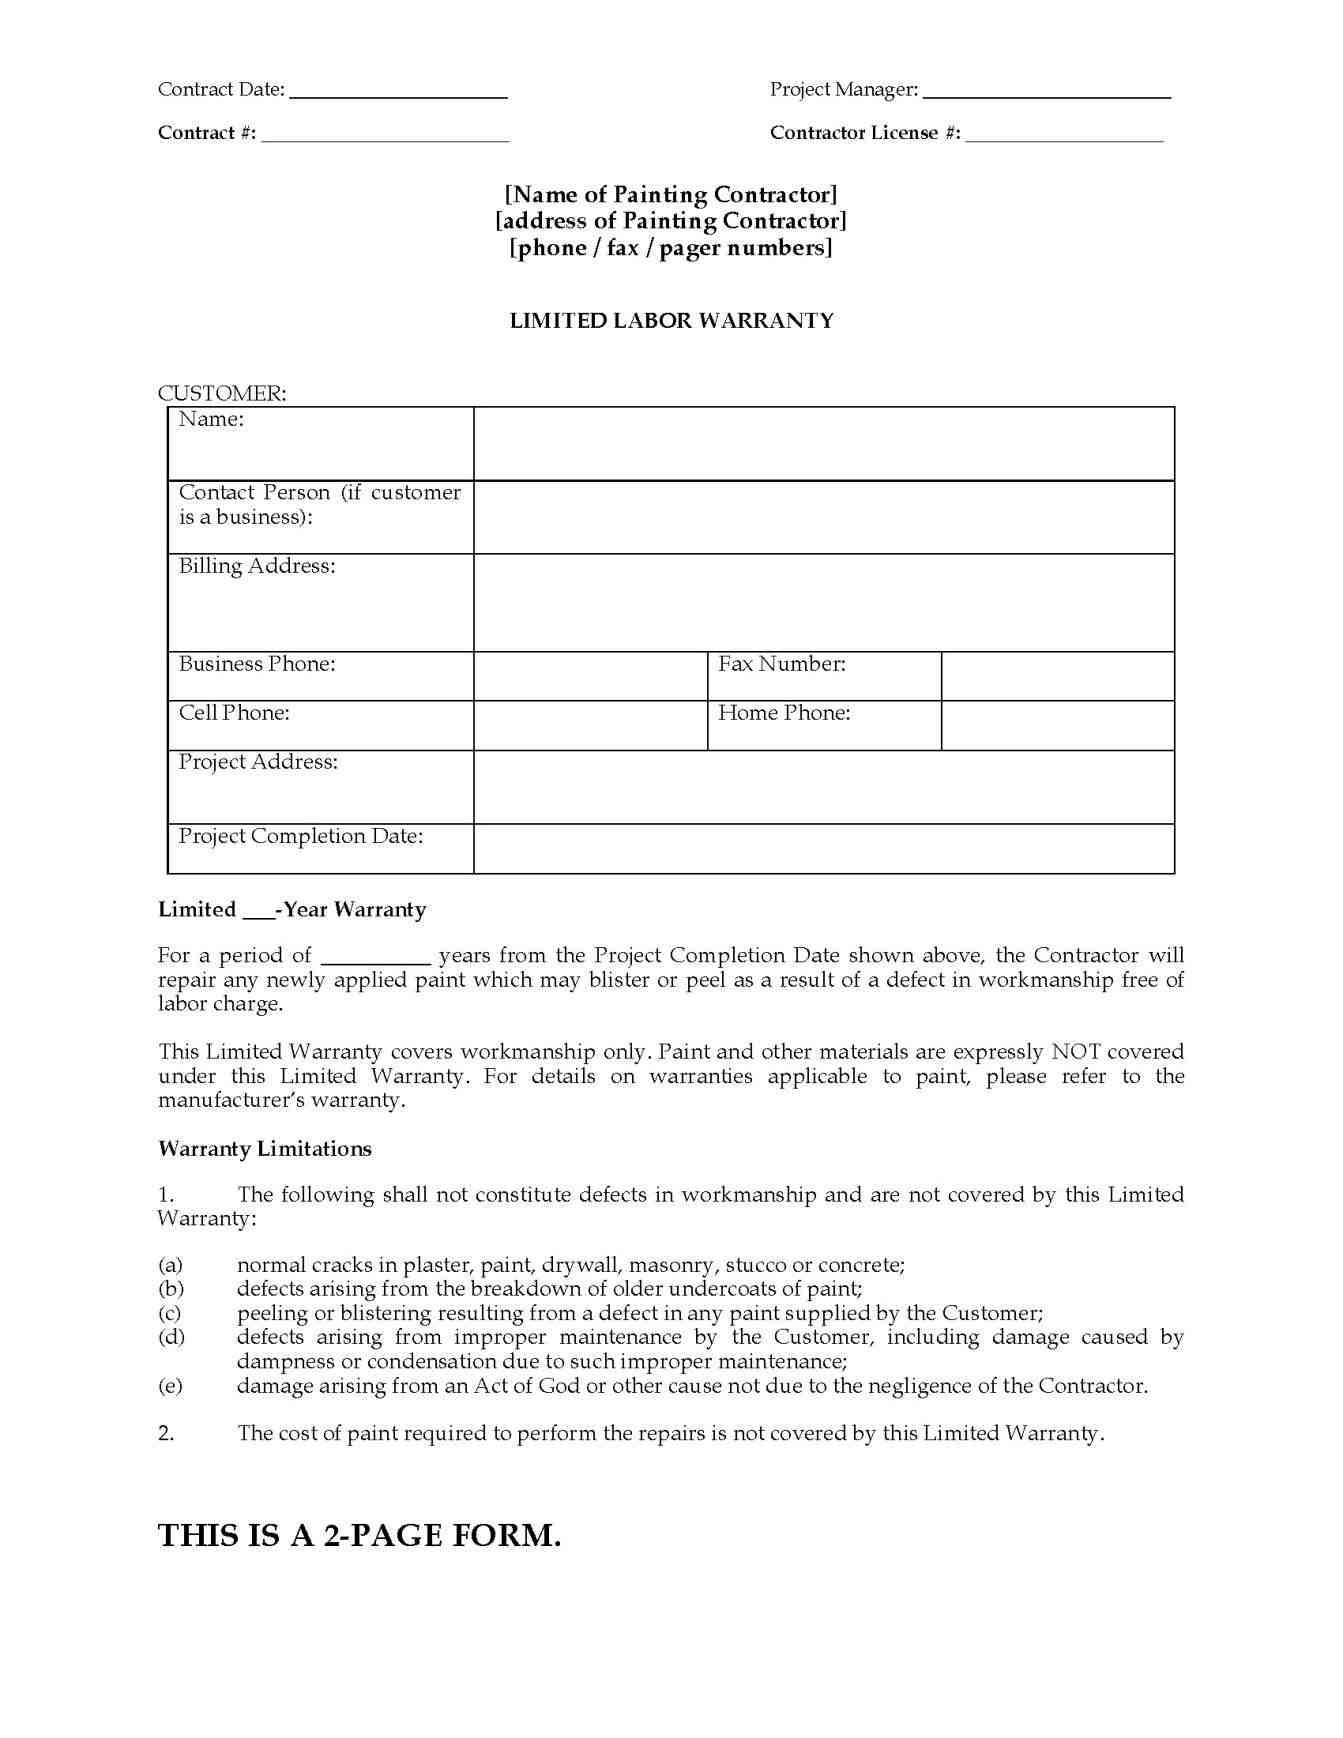 Subcontractor Warranty Letter Template - Free Example Letter Award Of Contract Letter Fresh Ranked Mercial